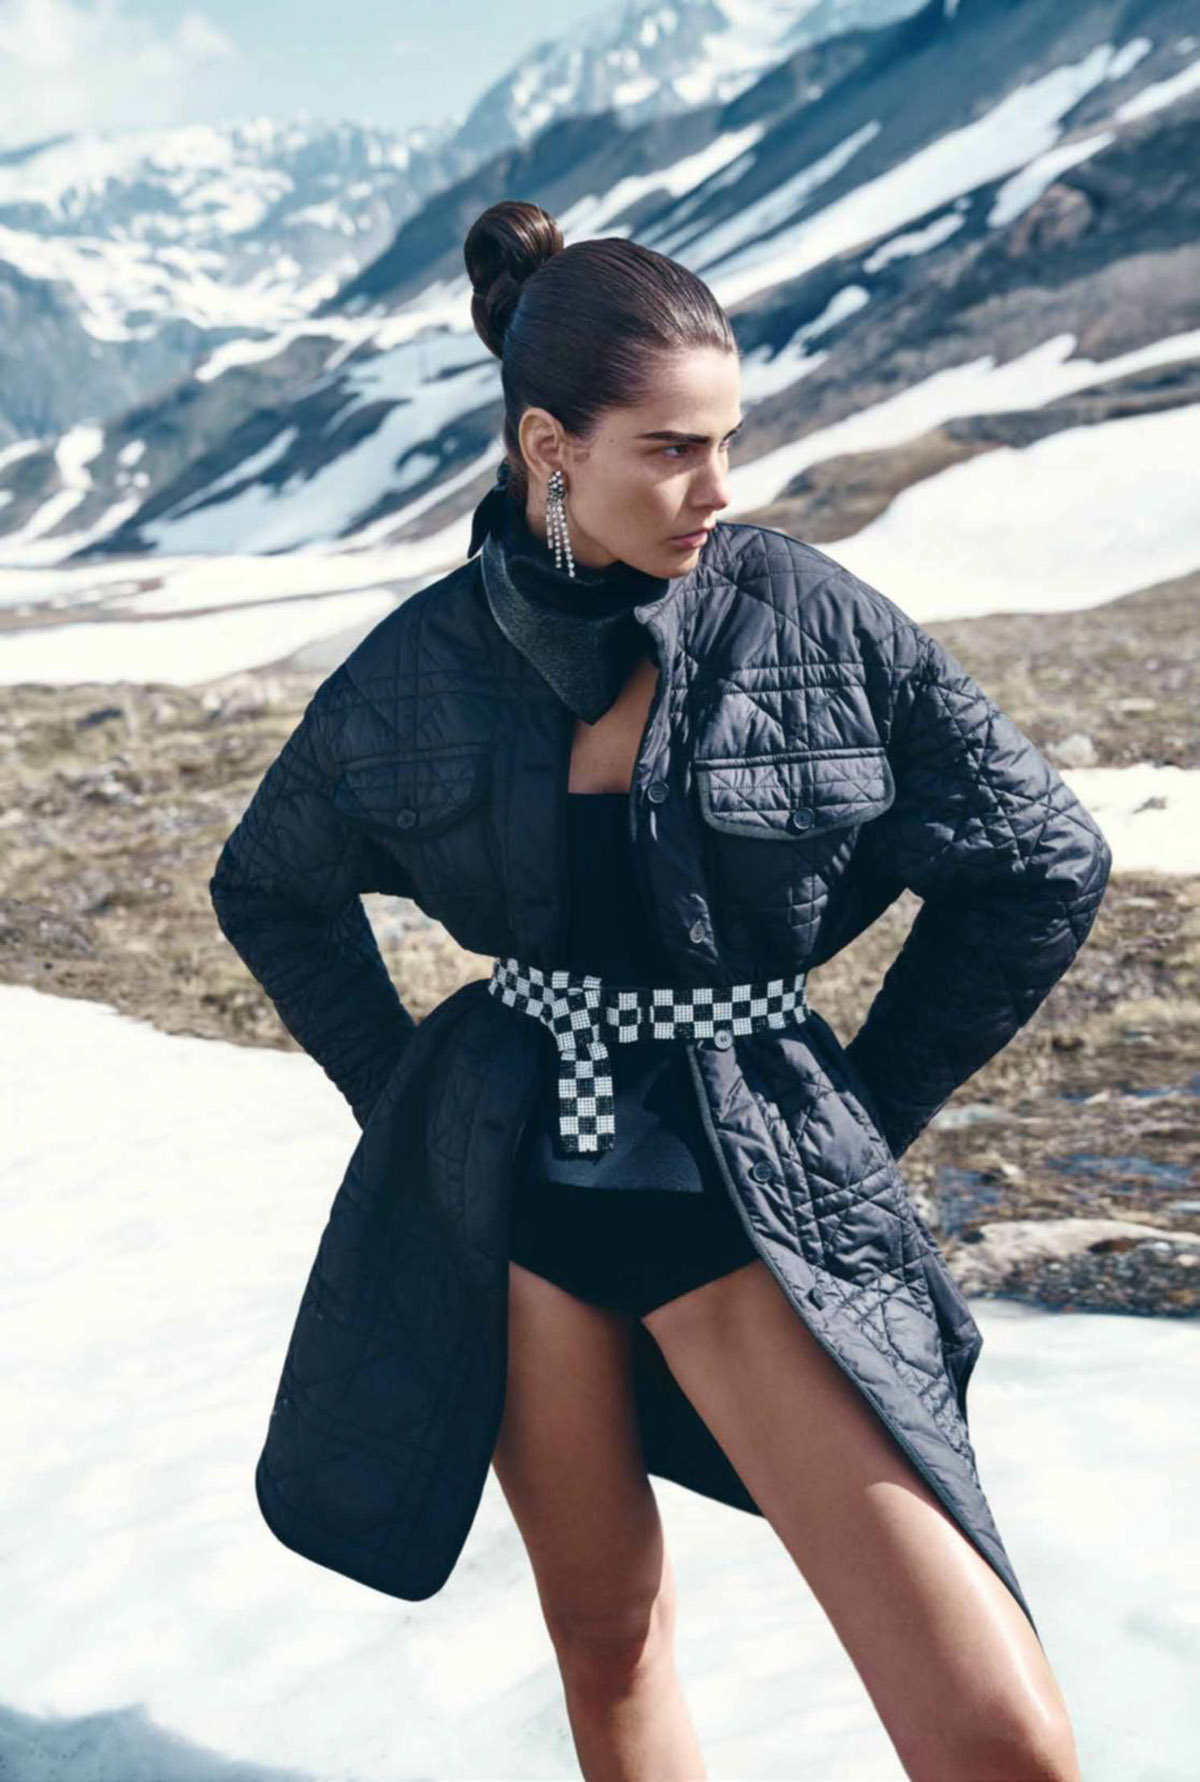 Monica Cima by Thiemo Sander for Madame Figaro August 27th, 2021